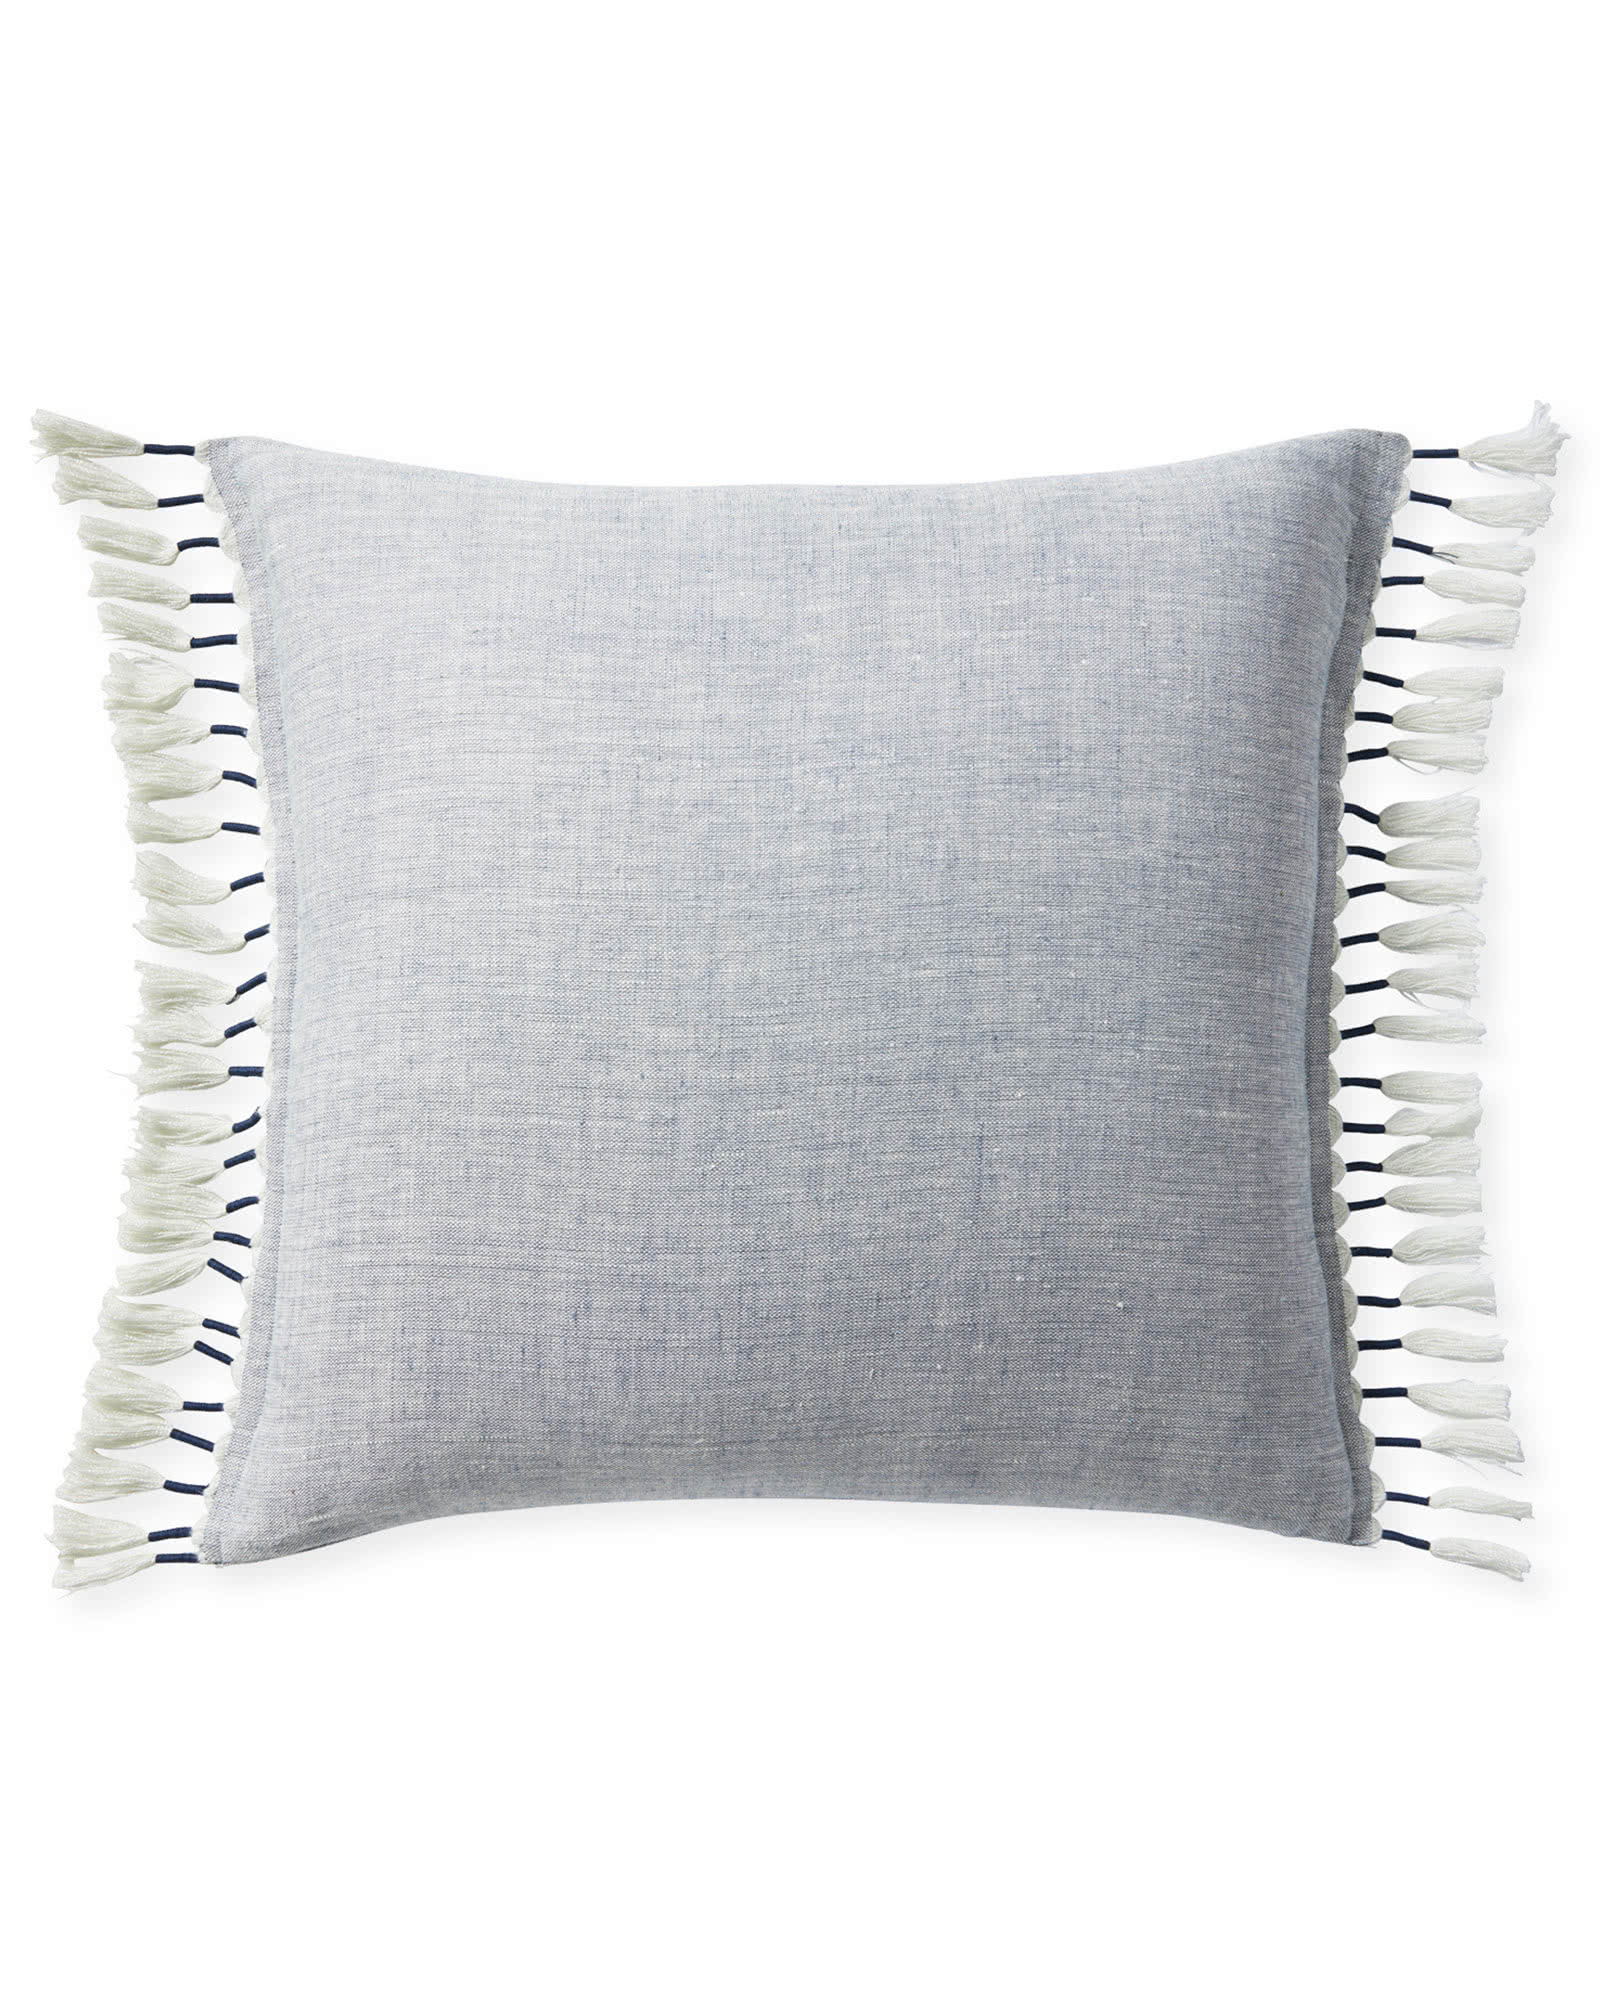 Topanga Pillow Cover, Blue